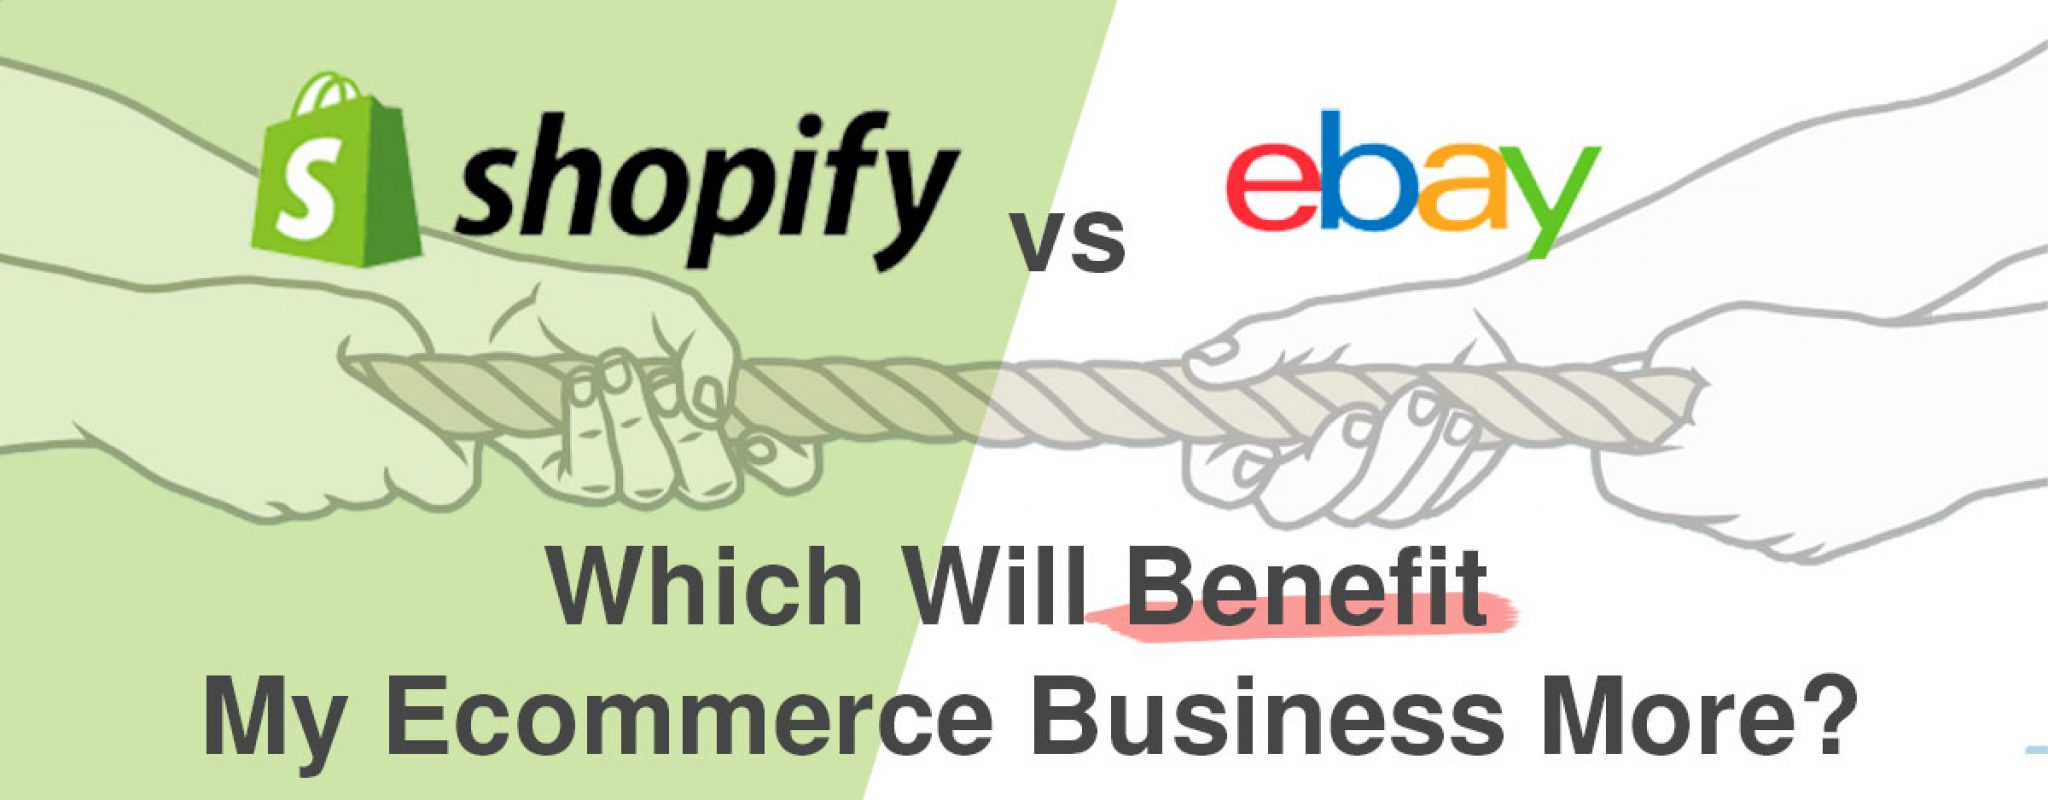 Shopify vs eBay: Which Will Benefit My Ecommerce Business More?